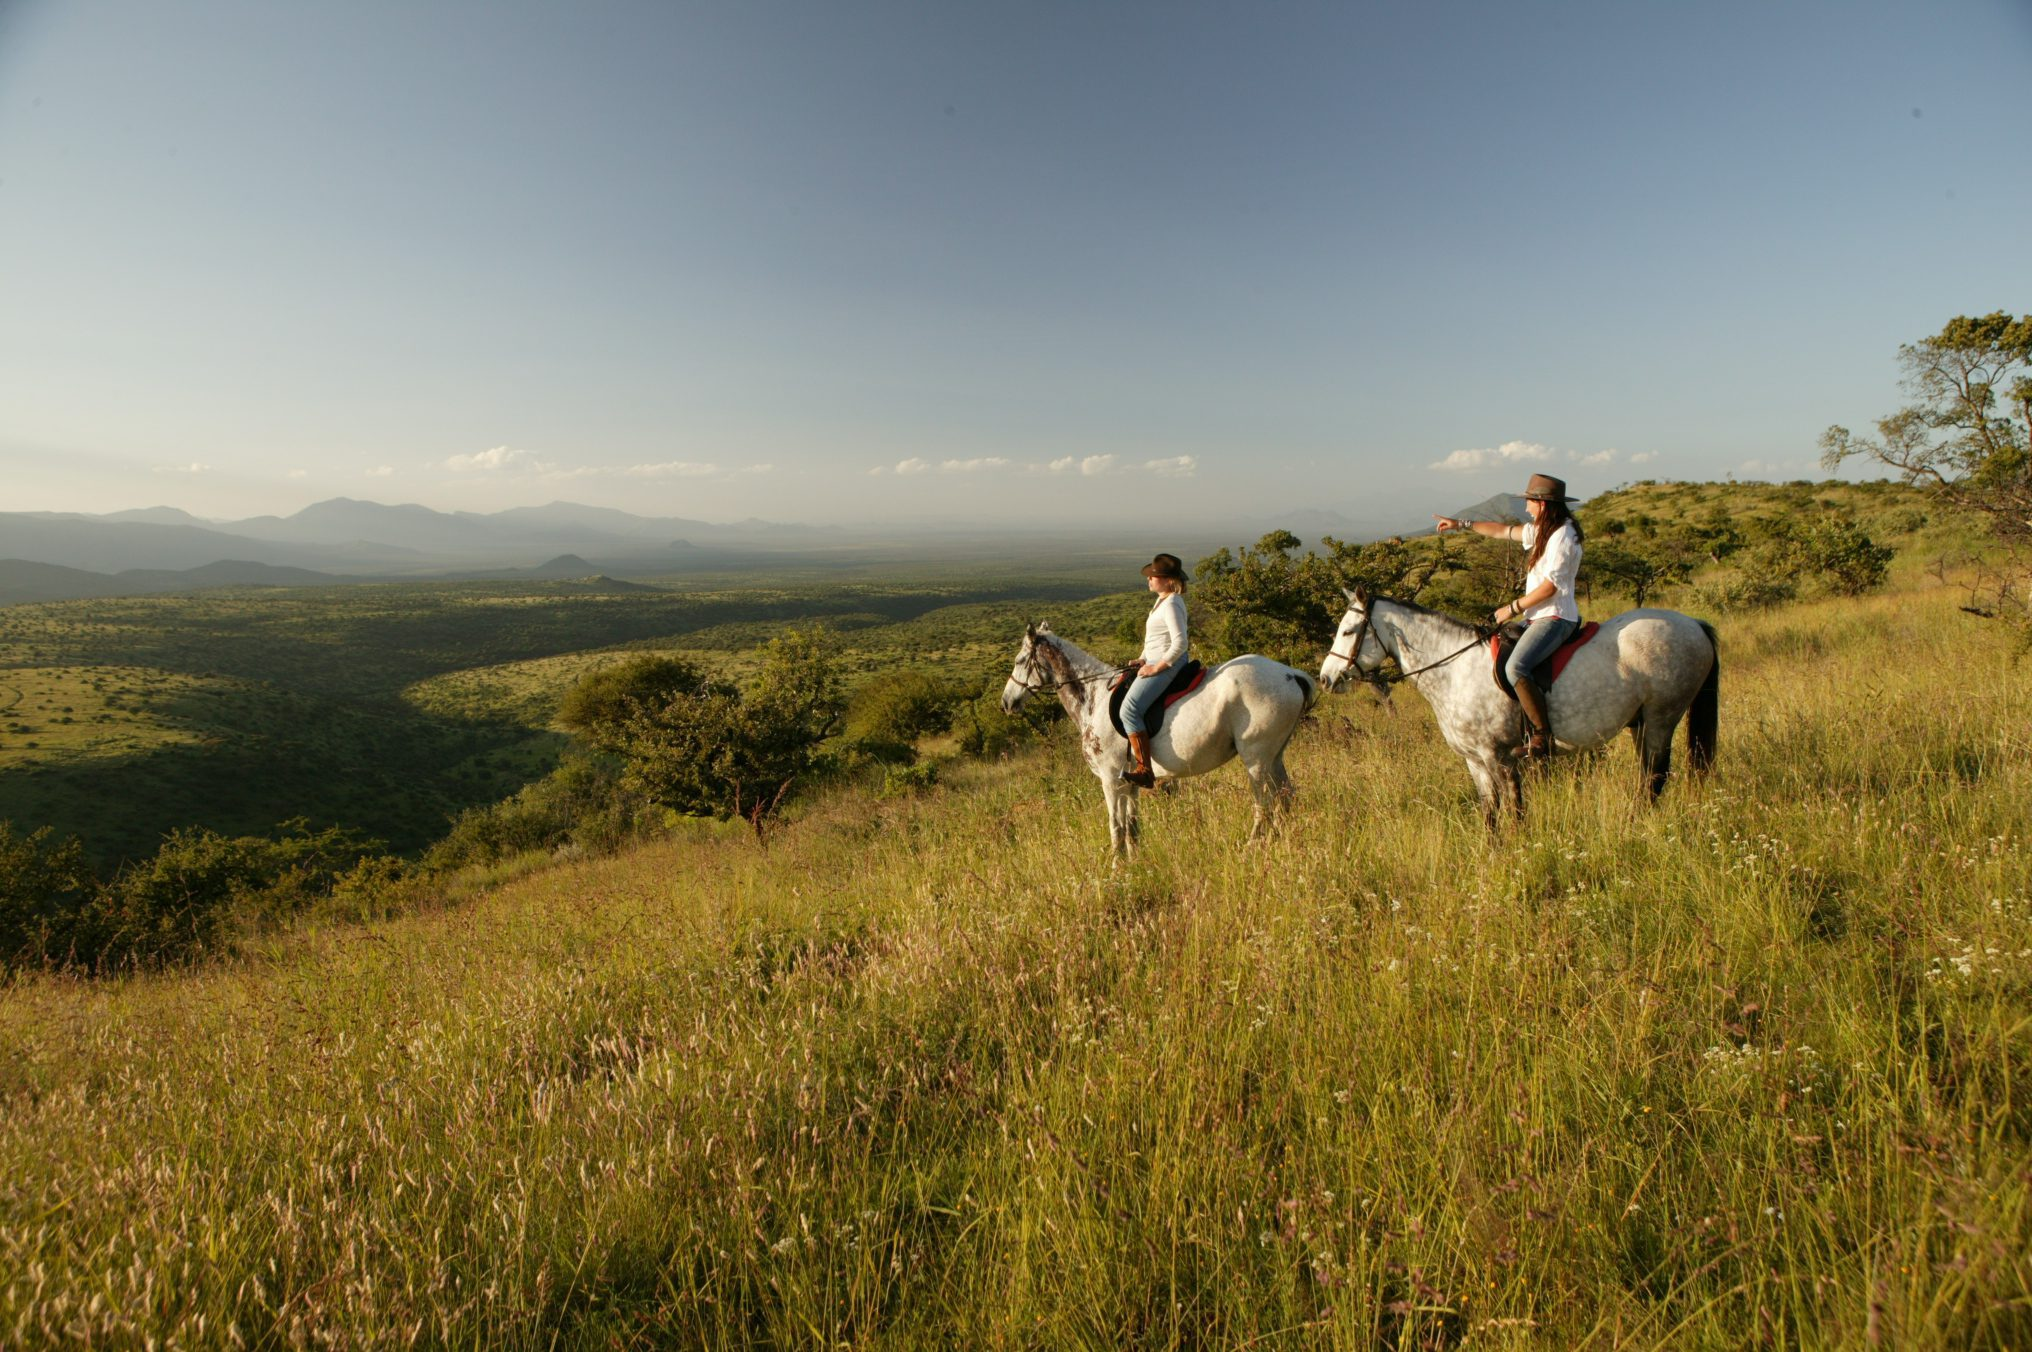 two white horses with riders in Lewa stopped on a hill looking at the valley below.